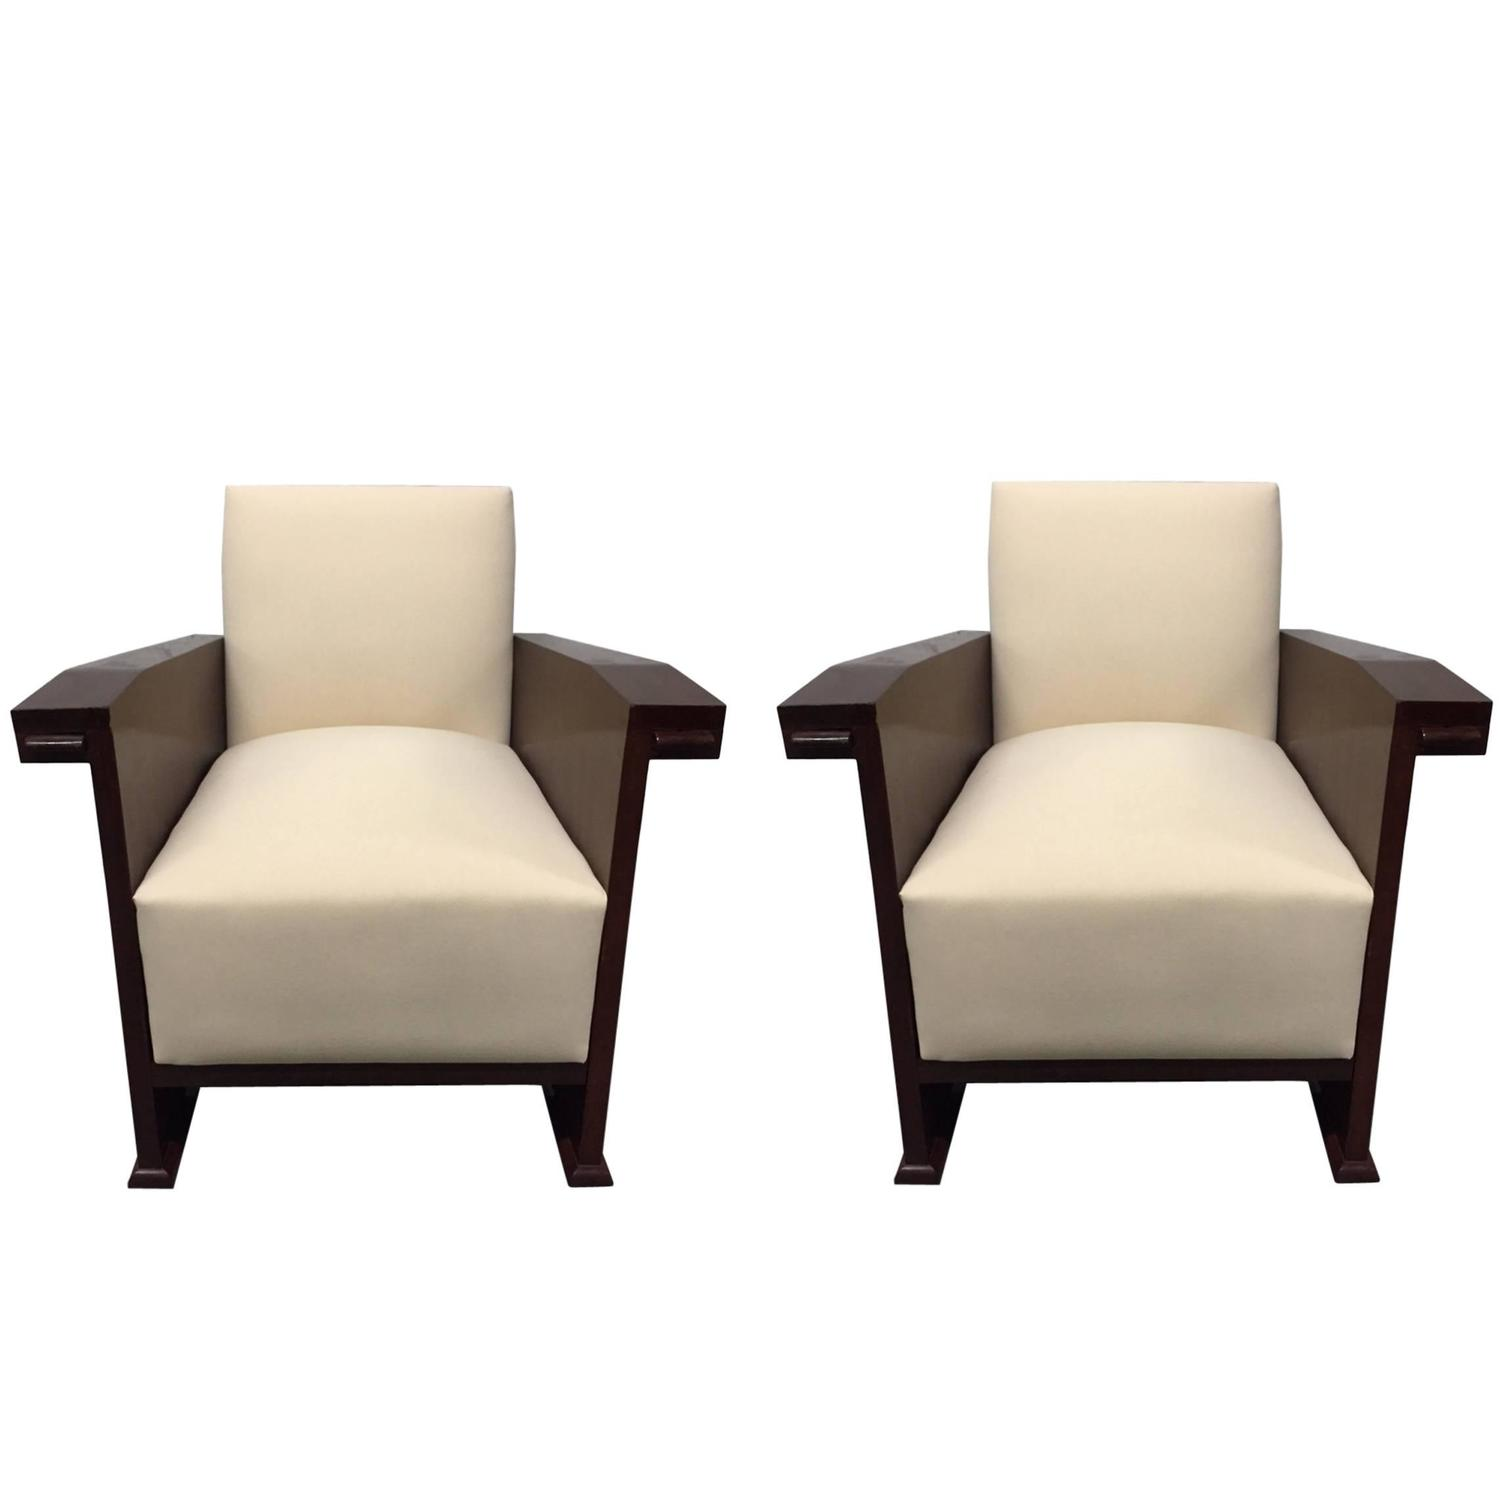 Pair Of Mahogany Art Deco Style Club Chairs For Sale At